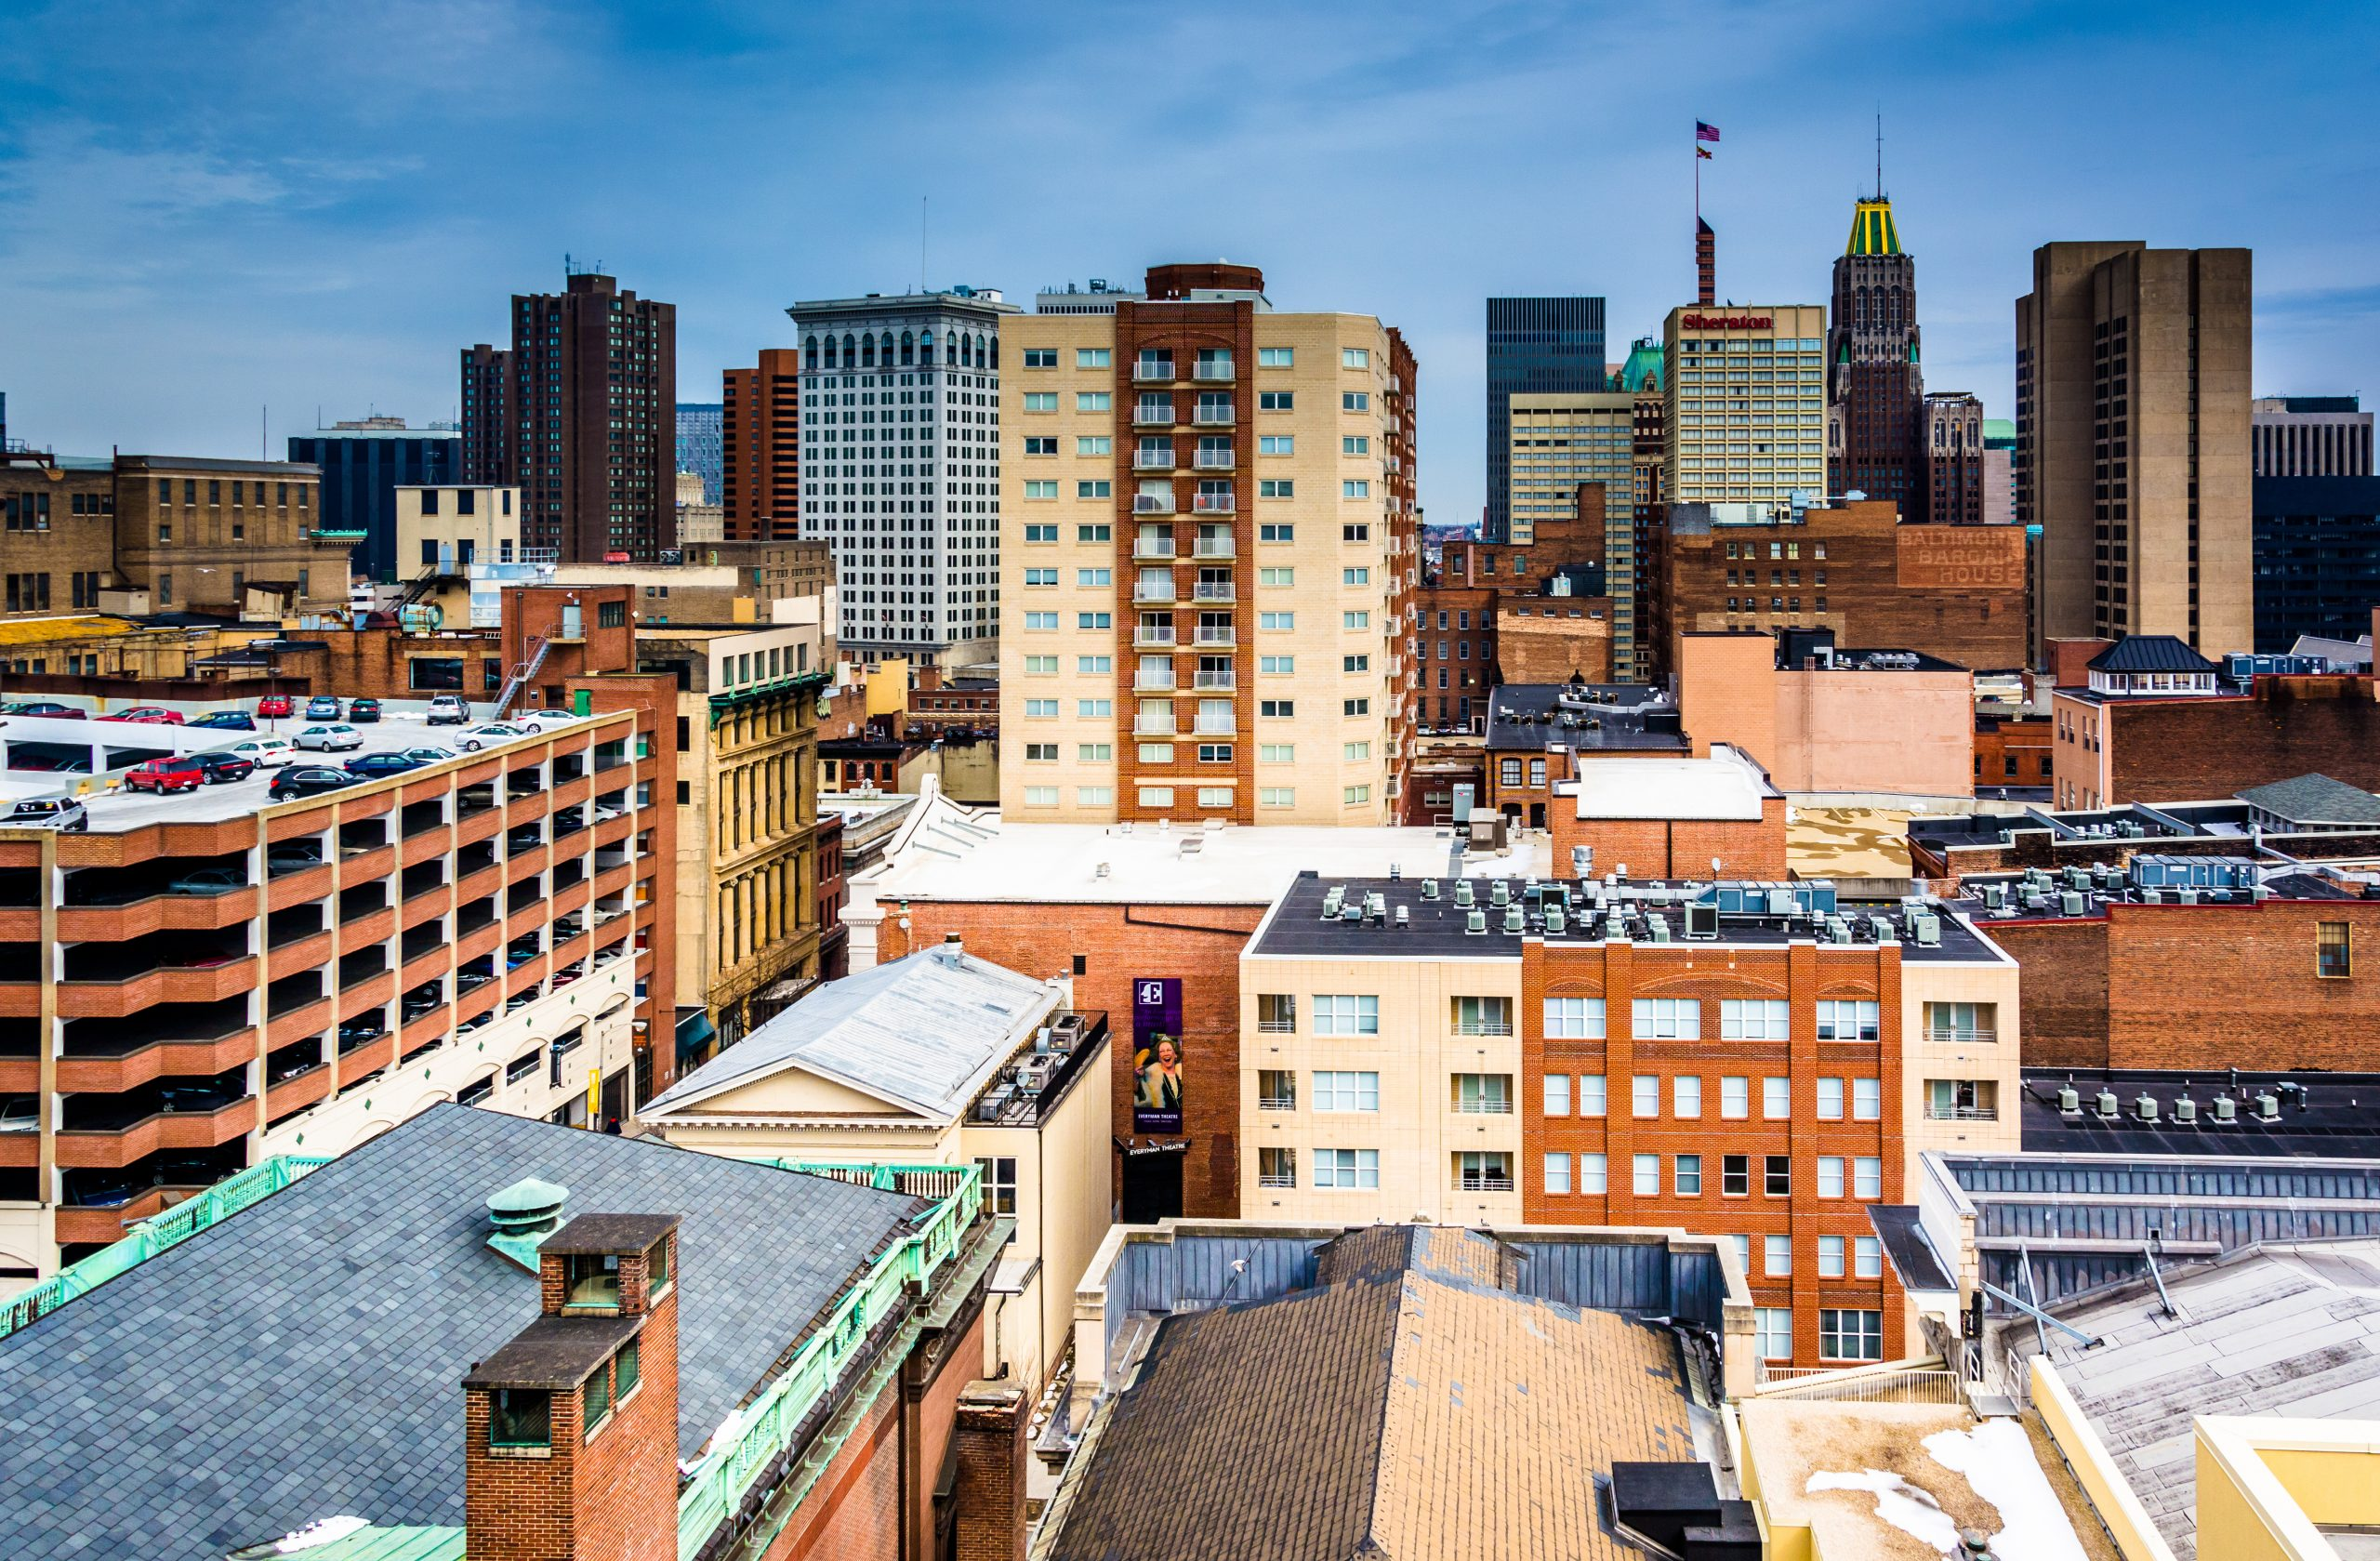 View of the skyline from a parking garage in Baltimore Maryland.